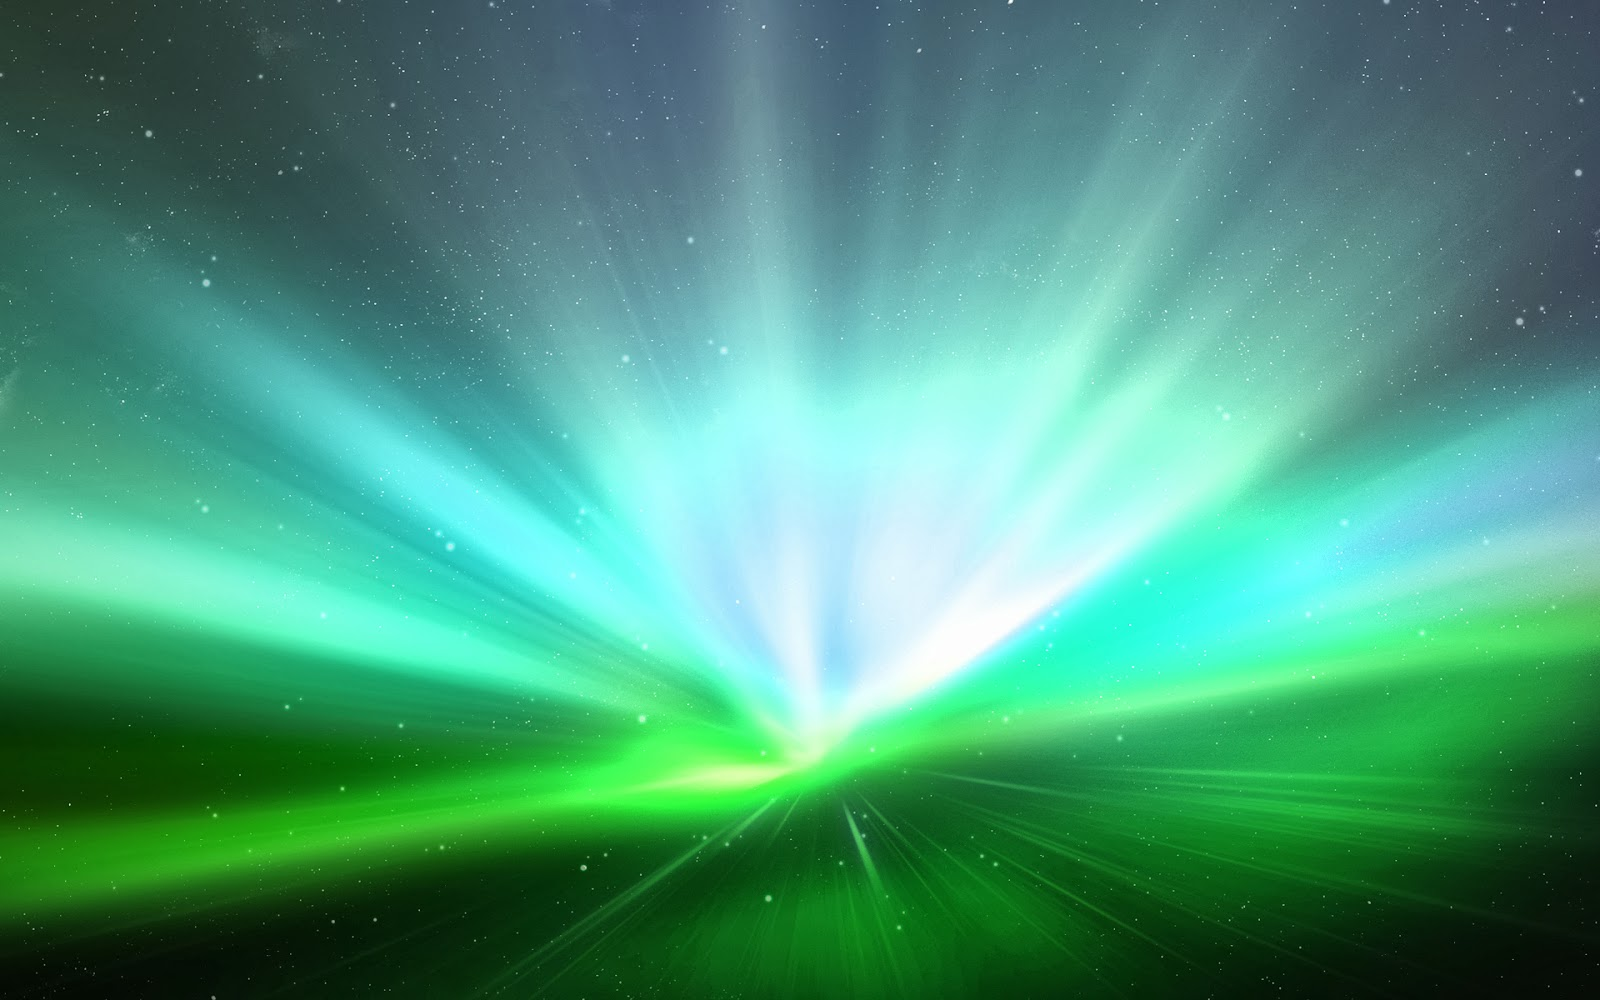 Hd Wallpapers Of S: Hd Wallpapers Blog: Green Aurora Hd Wallpapers